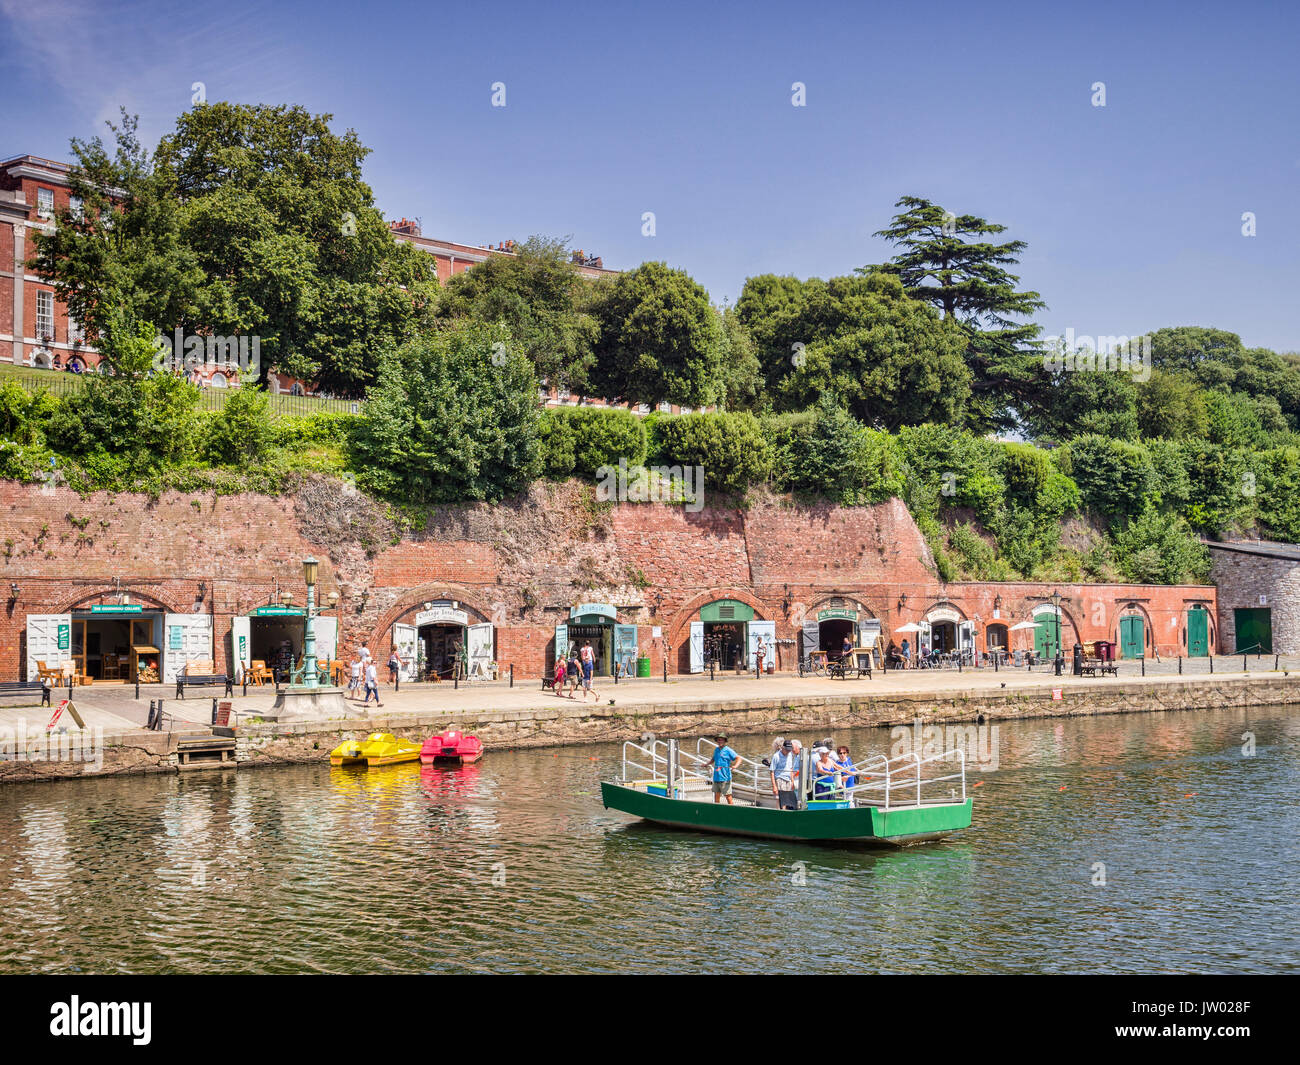 21 June 2017: Exeter Quayside, Exeter, Devon, England, UK - Butts Ferry, a hand powered cable ferry , crossing the River Exe towards the shops and gal - Stock Image